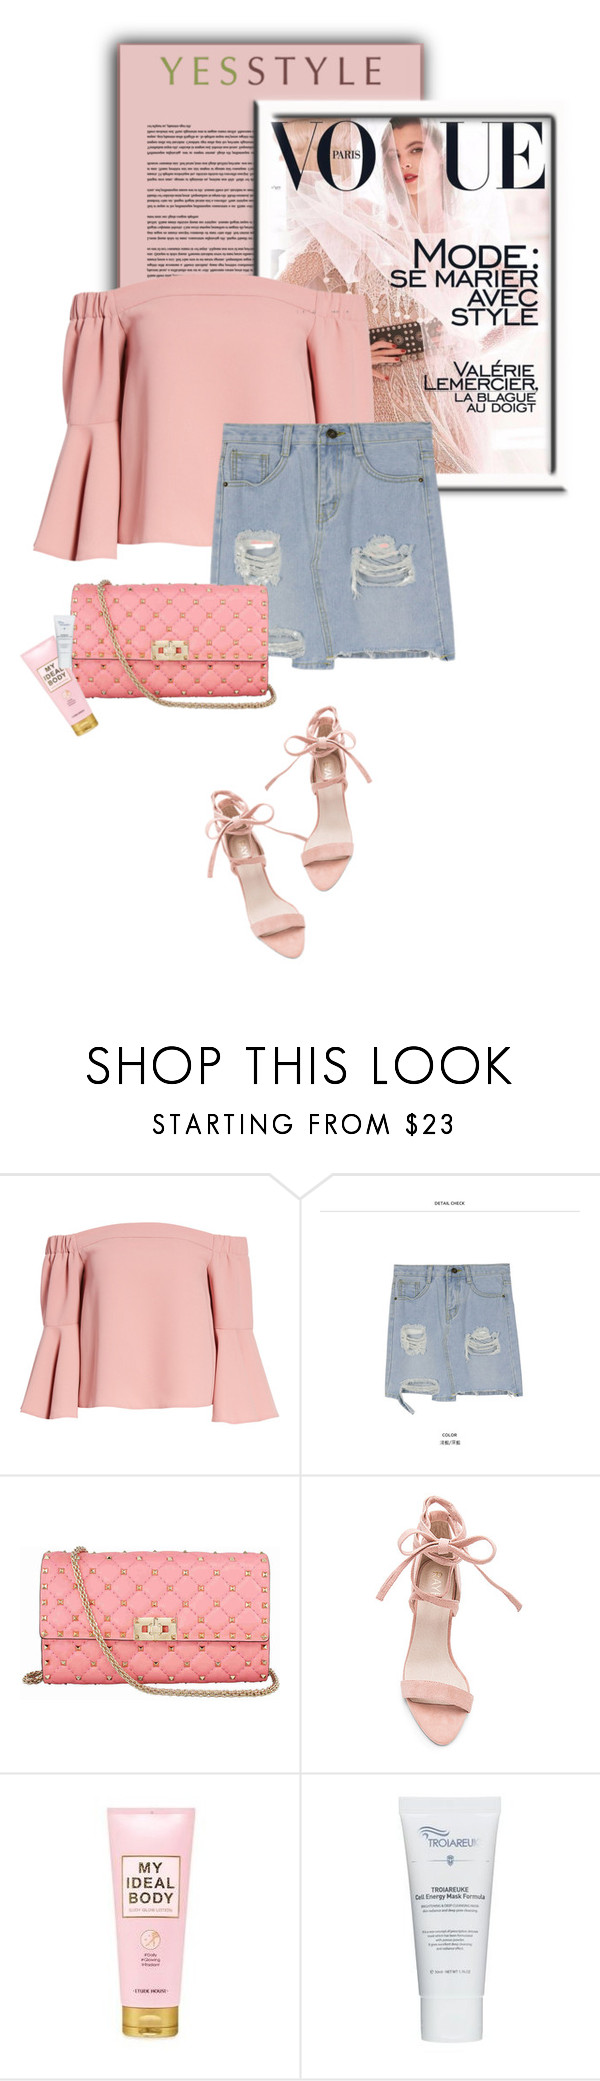 """""""YESSTYLE.com"""" by monmondefou ❤ liked on Polyvore featuring Topshop, Pufii, Valentino, Etude House, Summer and yesstyle"""